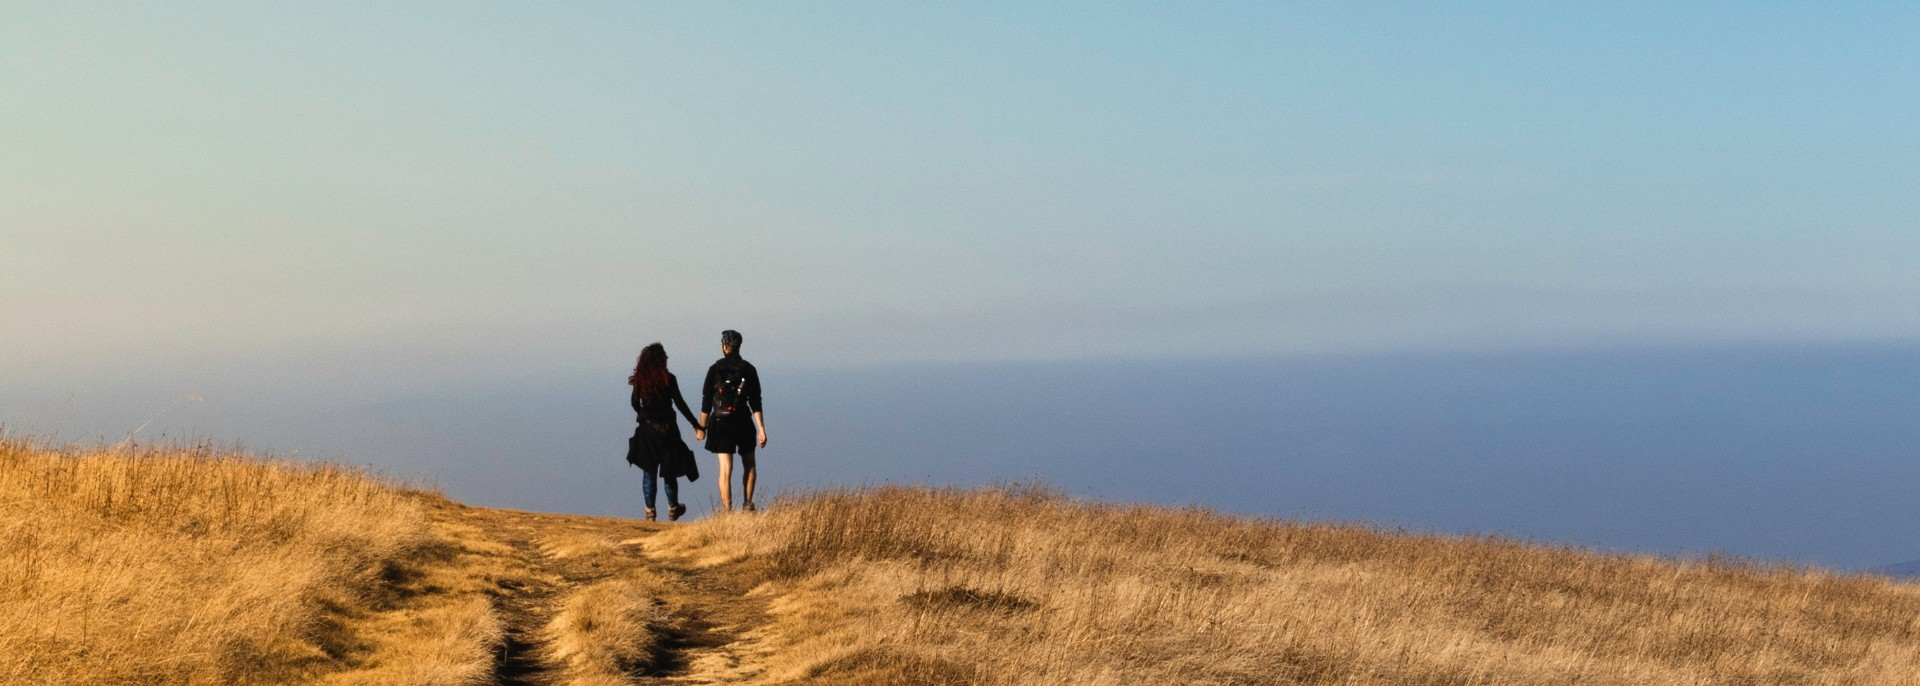 Boy and girl holding hands walking on yellow grassy plain with clear blue skies